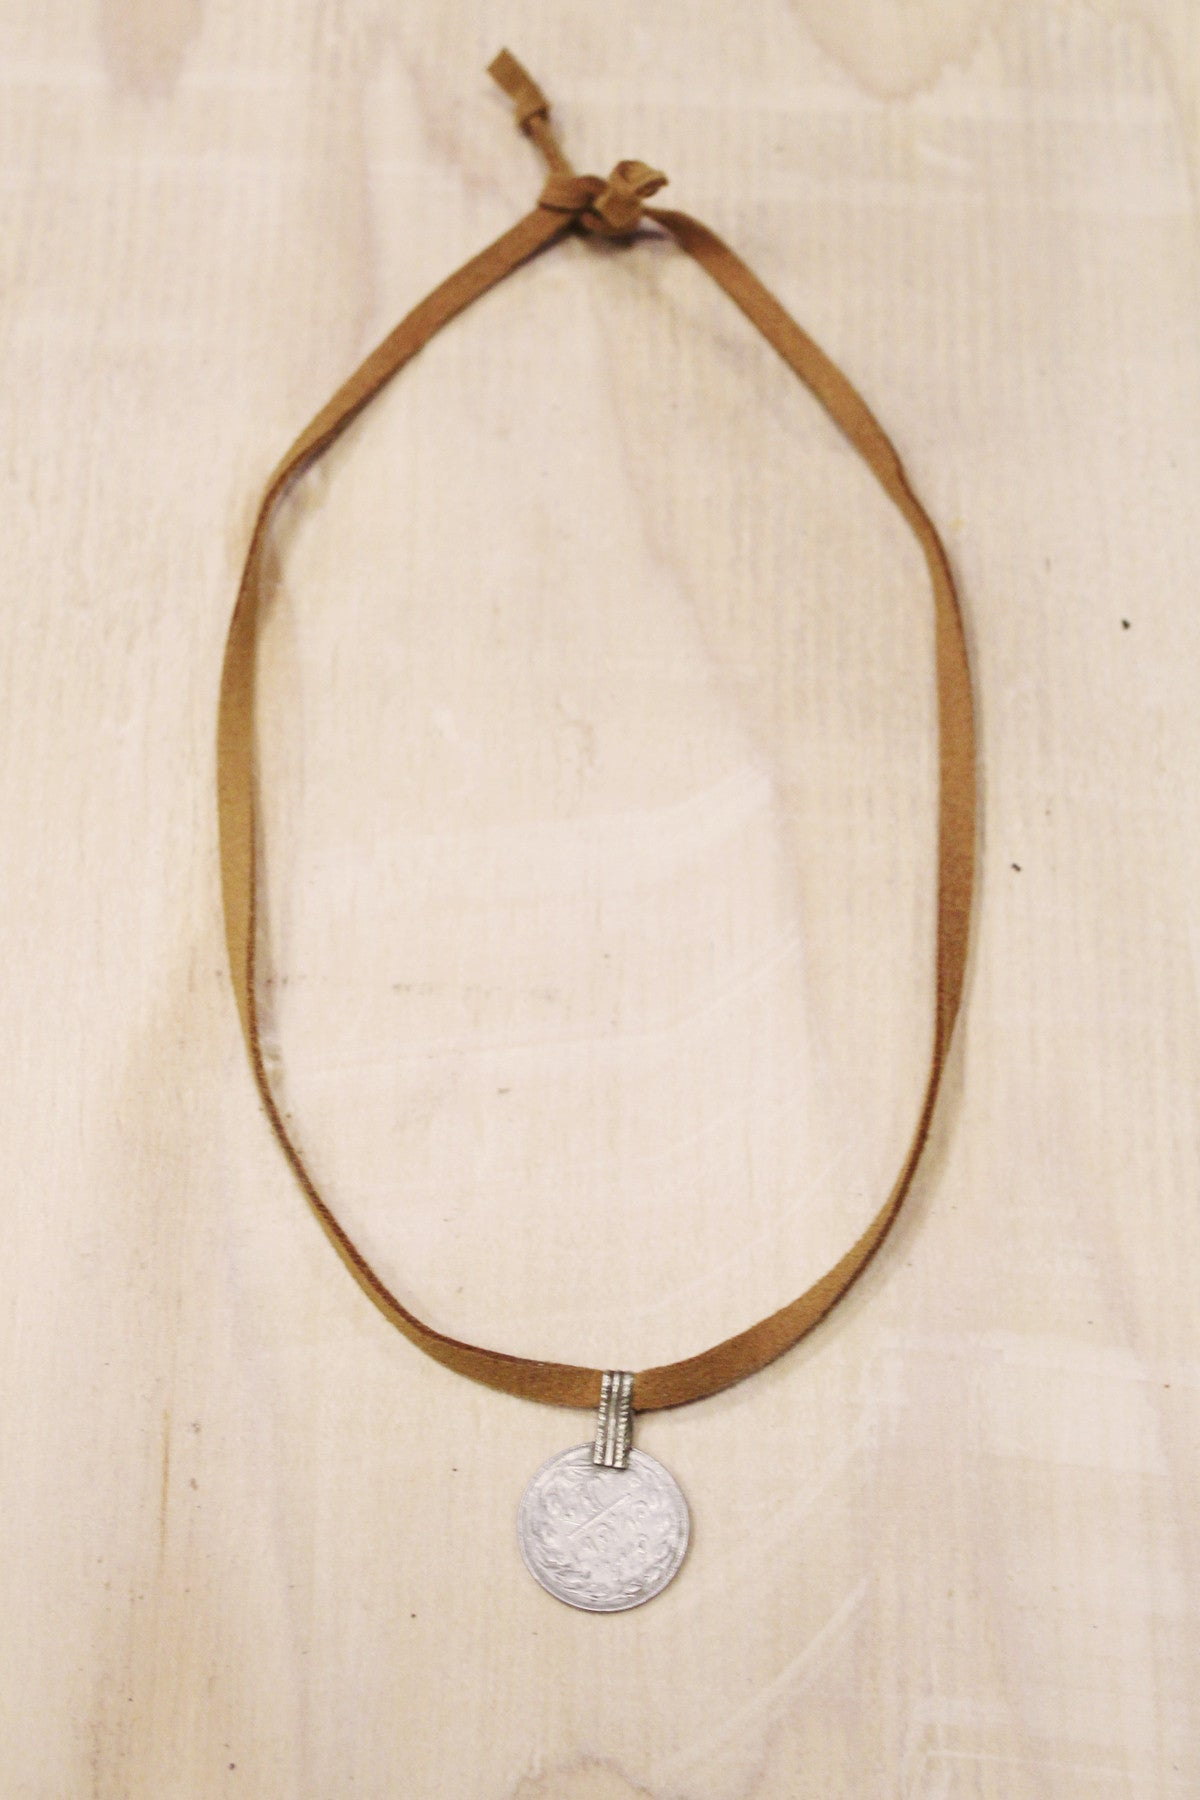 Kashmir Vegan Choker in Tan